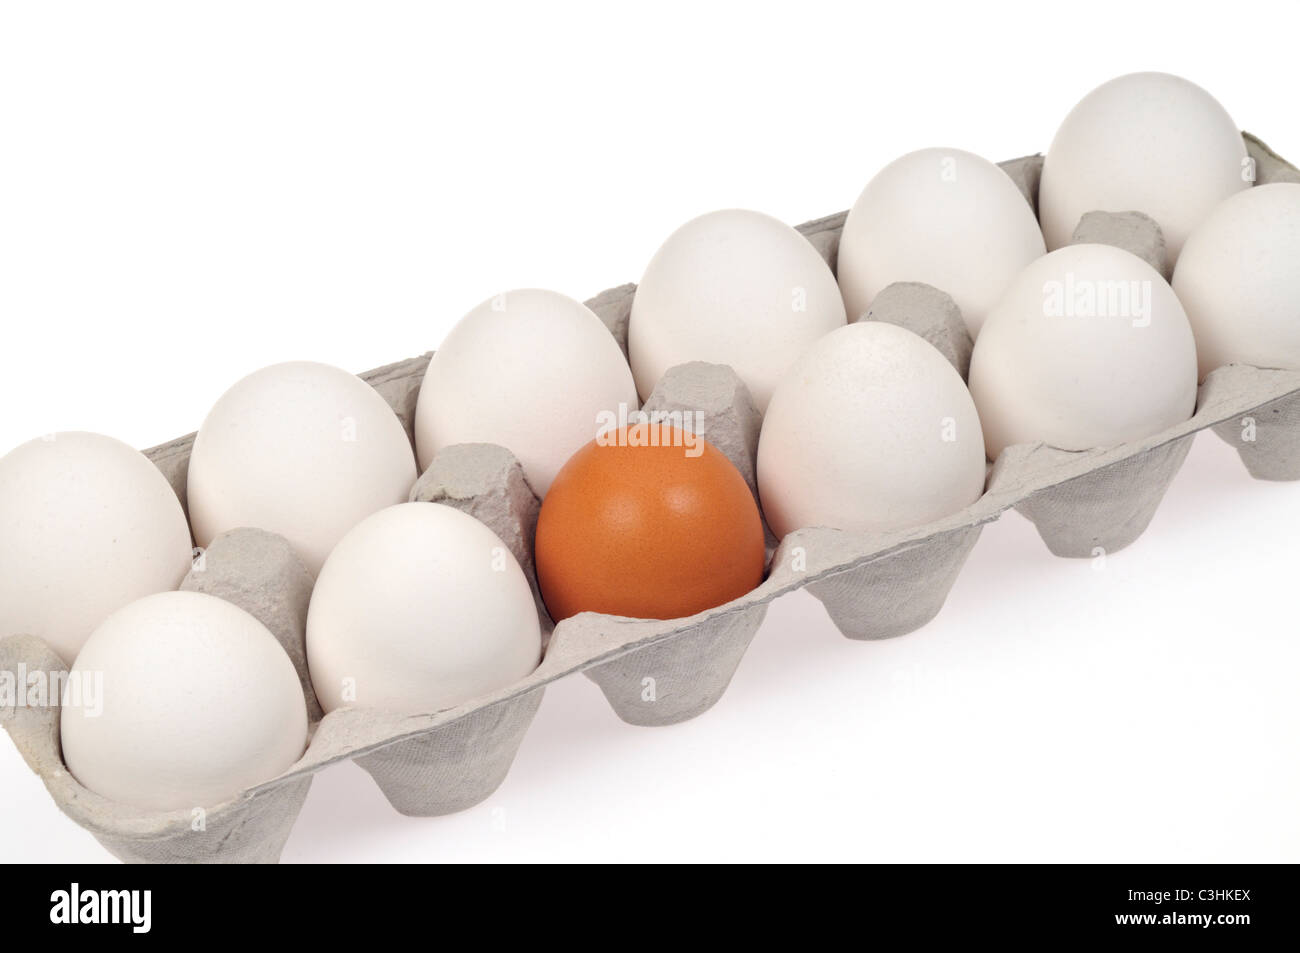 Close-up of concept shot of alienation and discrimination using 11 white eggs and 1 brown egg in carton, white background. - Stock Image